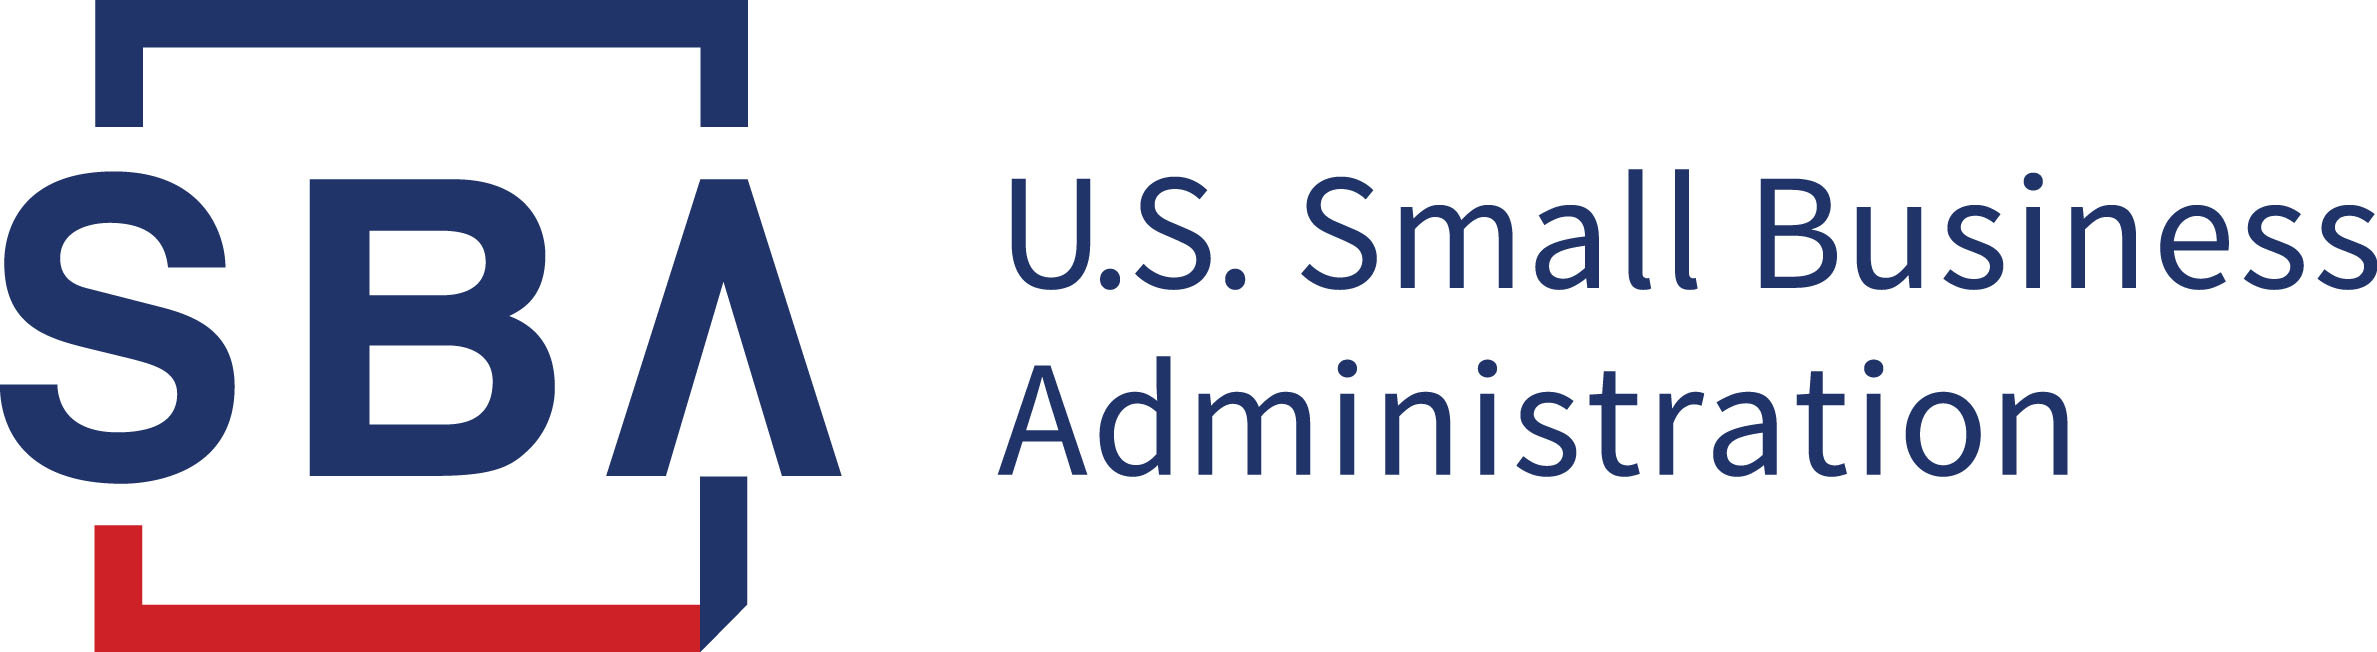 small business administration Small business administration | usagov                wwwusagov/federal-agencies/small-business-administration.